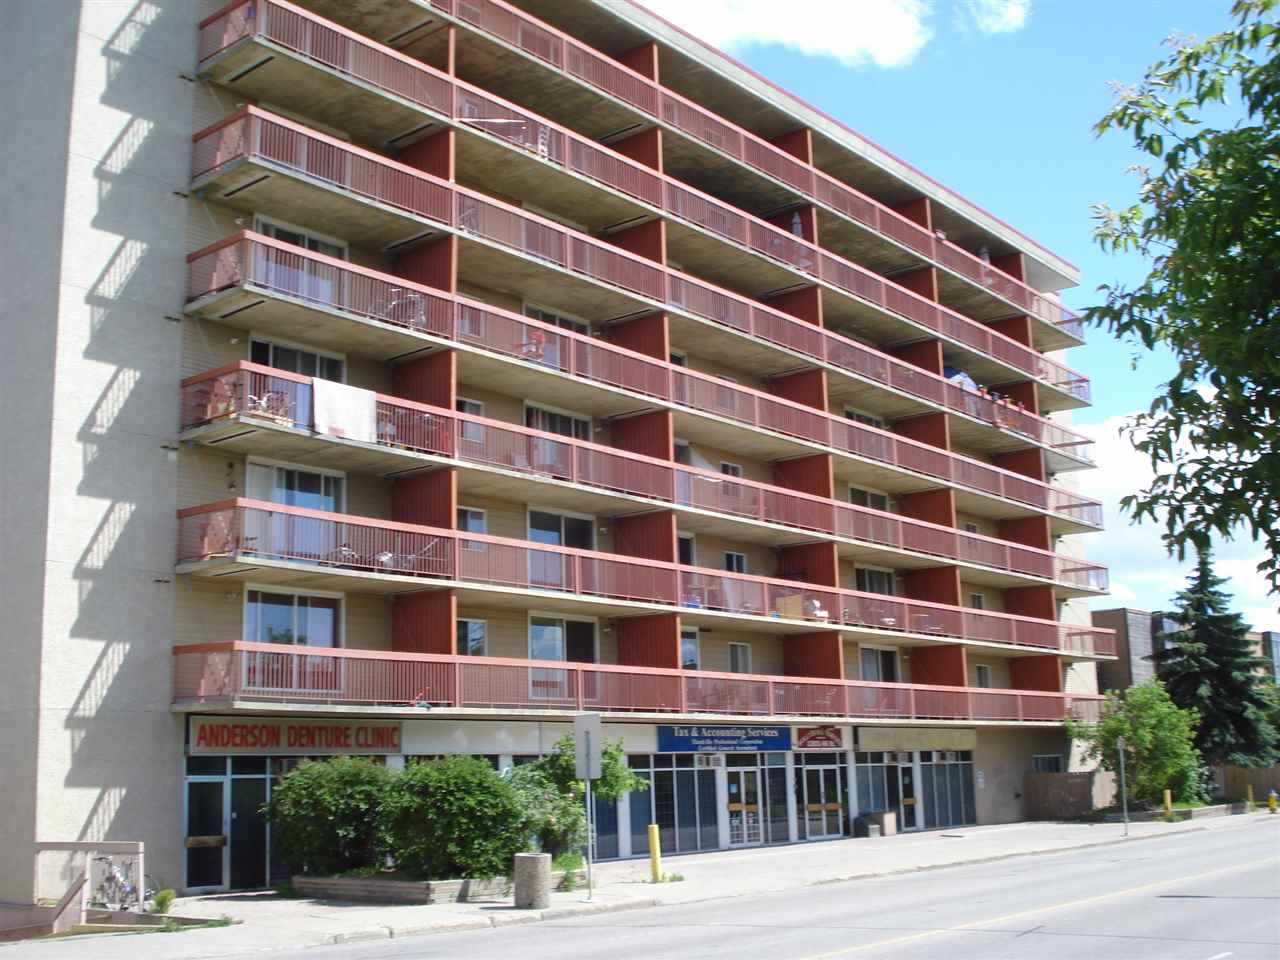 This bright corner unit features 2 good sized bedrooms, a newer kitchen & 4 piece Bath & updated flooring. Enjoy your morning coffee on the large east facing balcony with private storage room. Recent building upgrades include; Elevator fully serviced last year, and new security system installed with camerals in the parkade, and at the front & back entrances. Laundry facility on the same floor, just 2 doors down the hall. Great property for first time buyers, students or investors. Concrete building for added soundproofing too. Close to downtown, the LRT, Public Transit & Shopping! As an added bonus the seller is willing to paint with your chosen colors before possession!